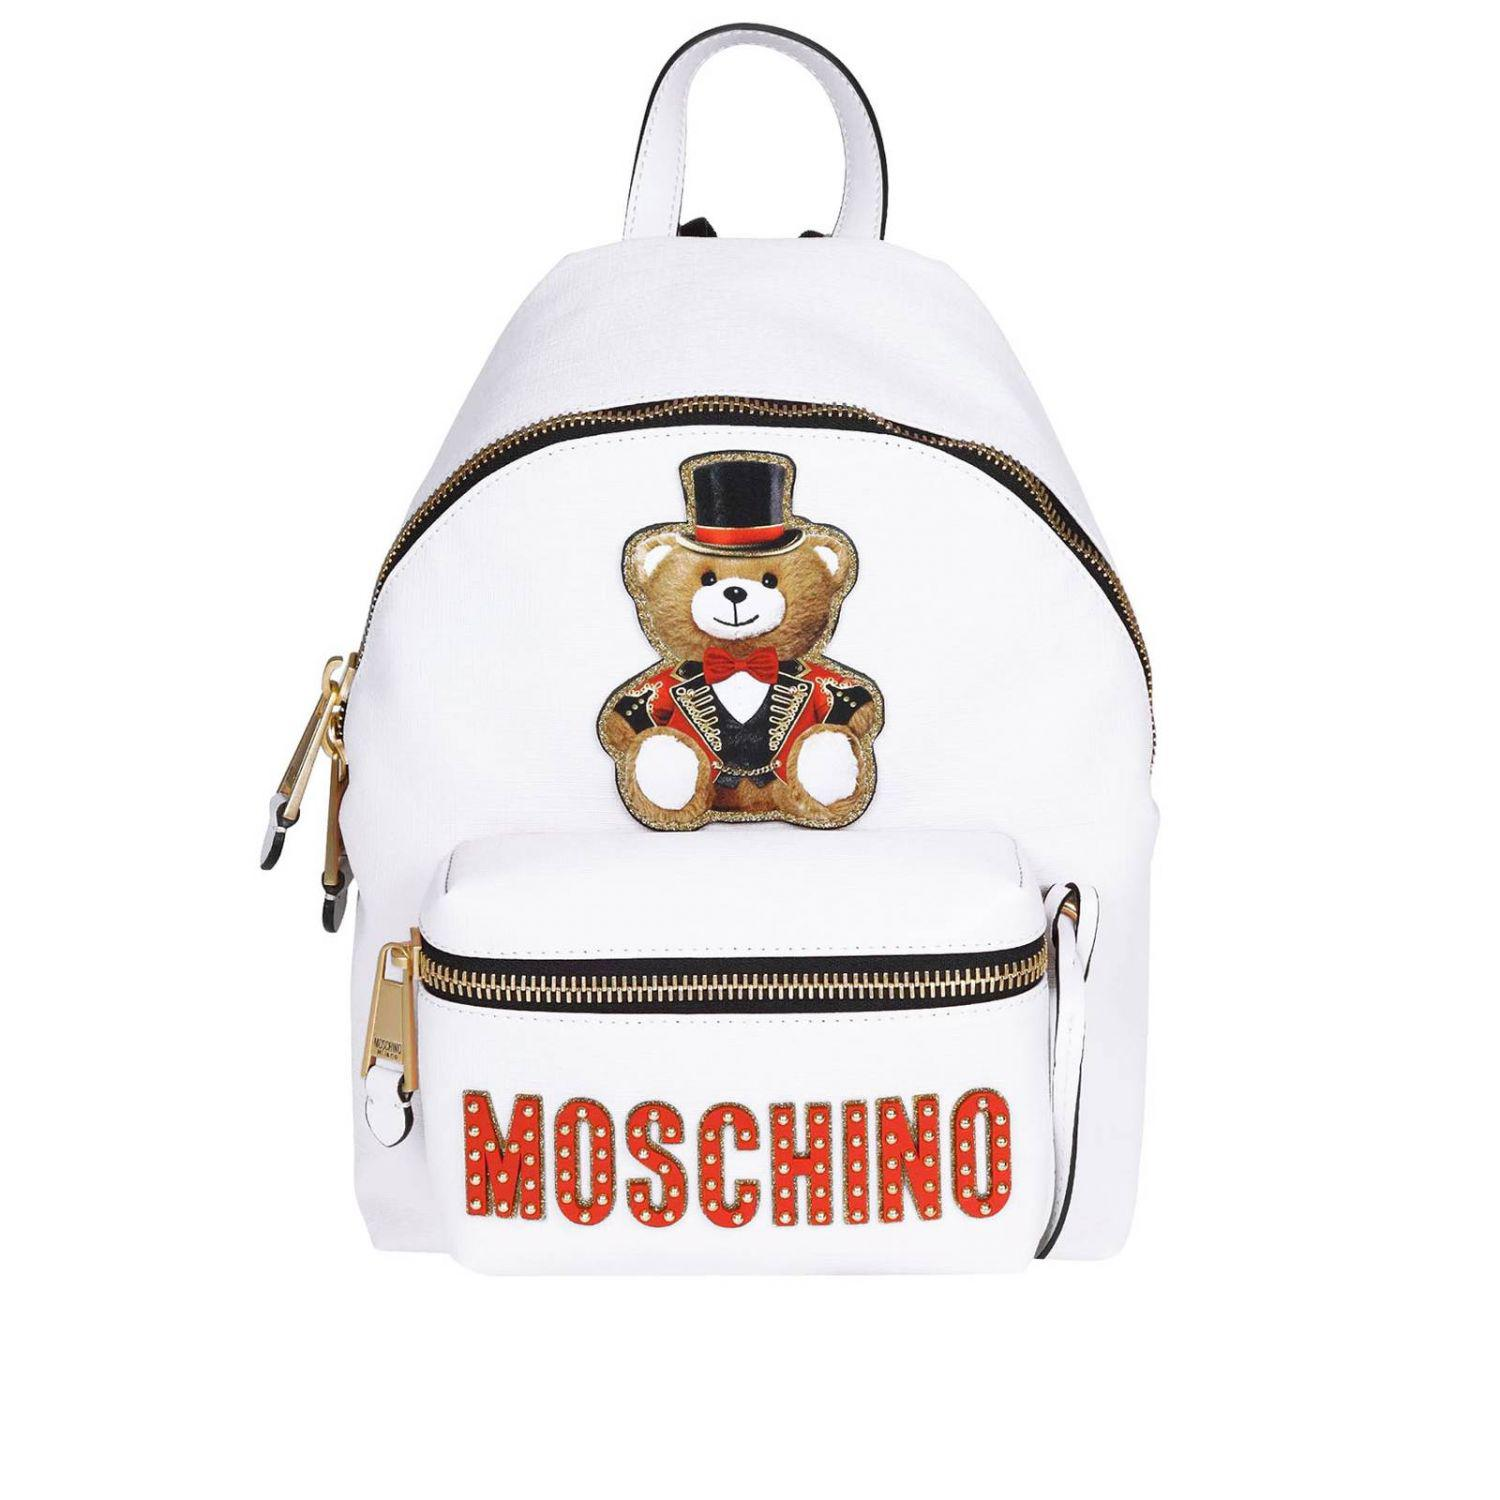 7b645854ea Lyst - Moschino Couture Backpack Women in White